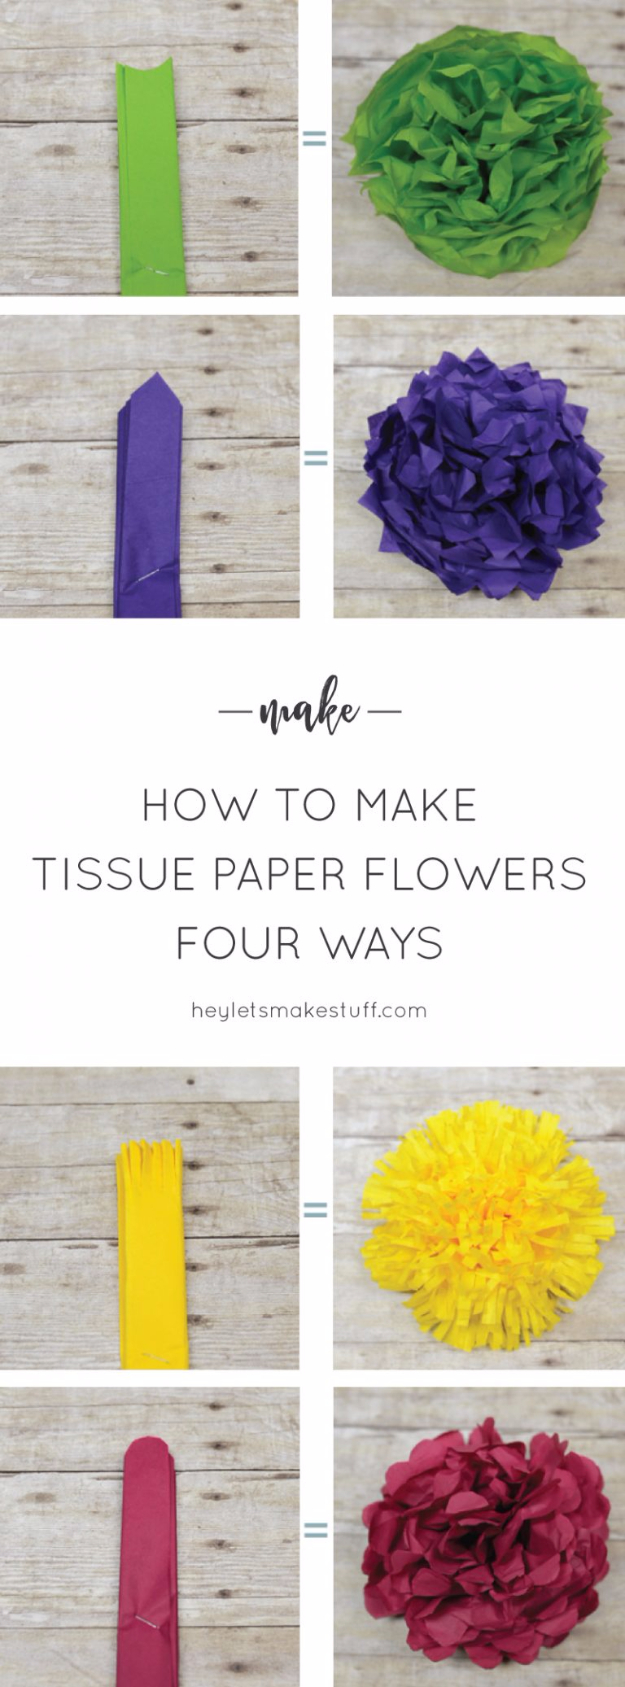 39 Easy DIY Party Decorations -Tissue Paper Flowers - Quick And Cheap Party Decors, Easy Ideas For DIY Party Decor, Birthday Decorations, Budget Do It Yourself Party Decorations #diyparties #party #partydecor #parties